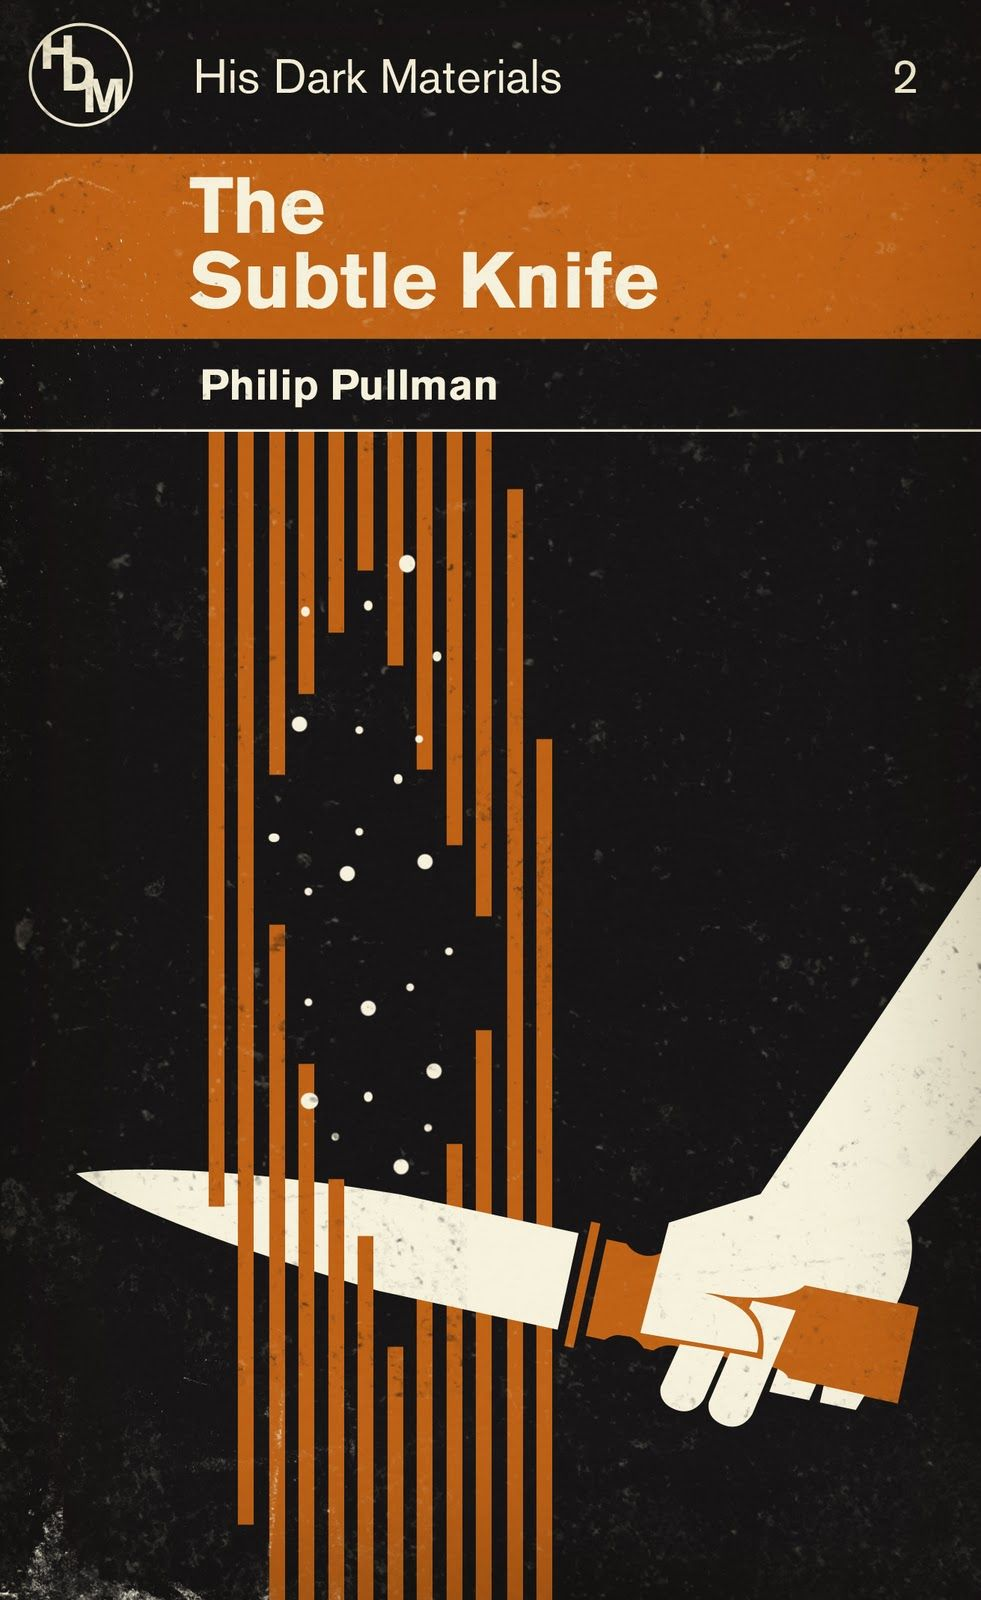 The Art of M. S. Corley: His Dark Materials by Philip Pullman Redesigns. The Subtle Knife. #hisdarkmaterials